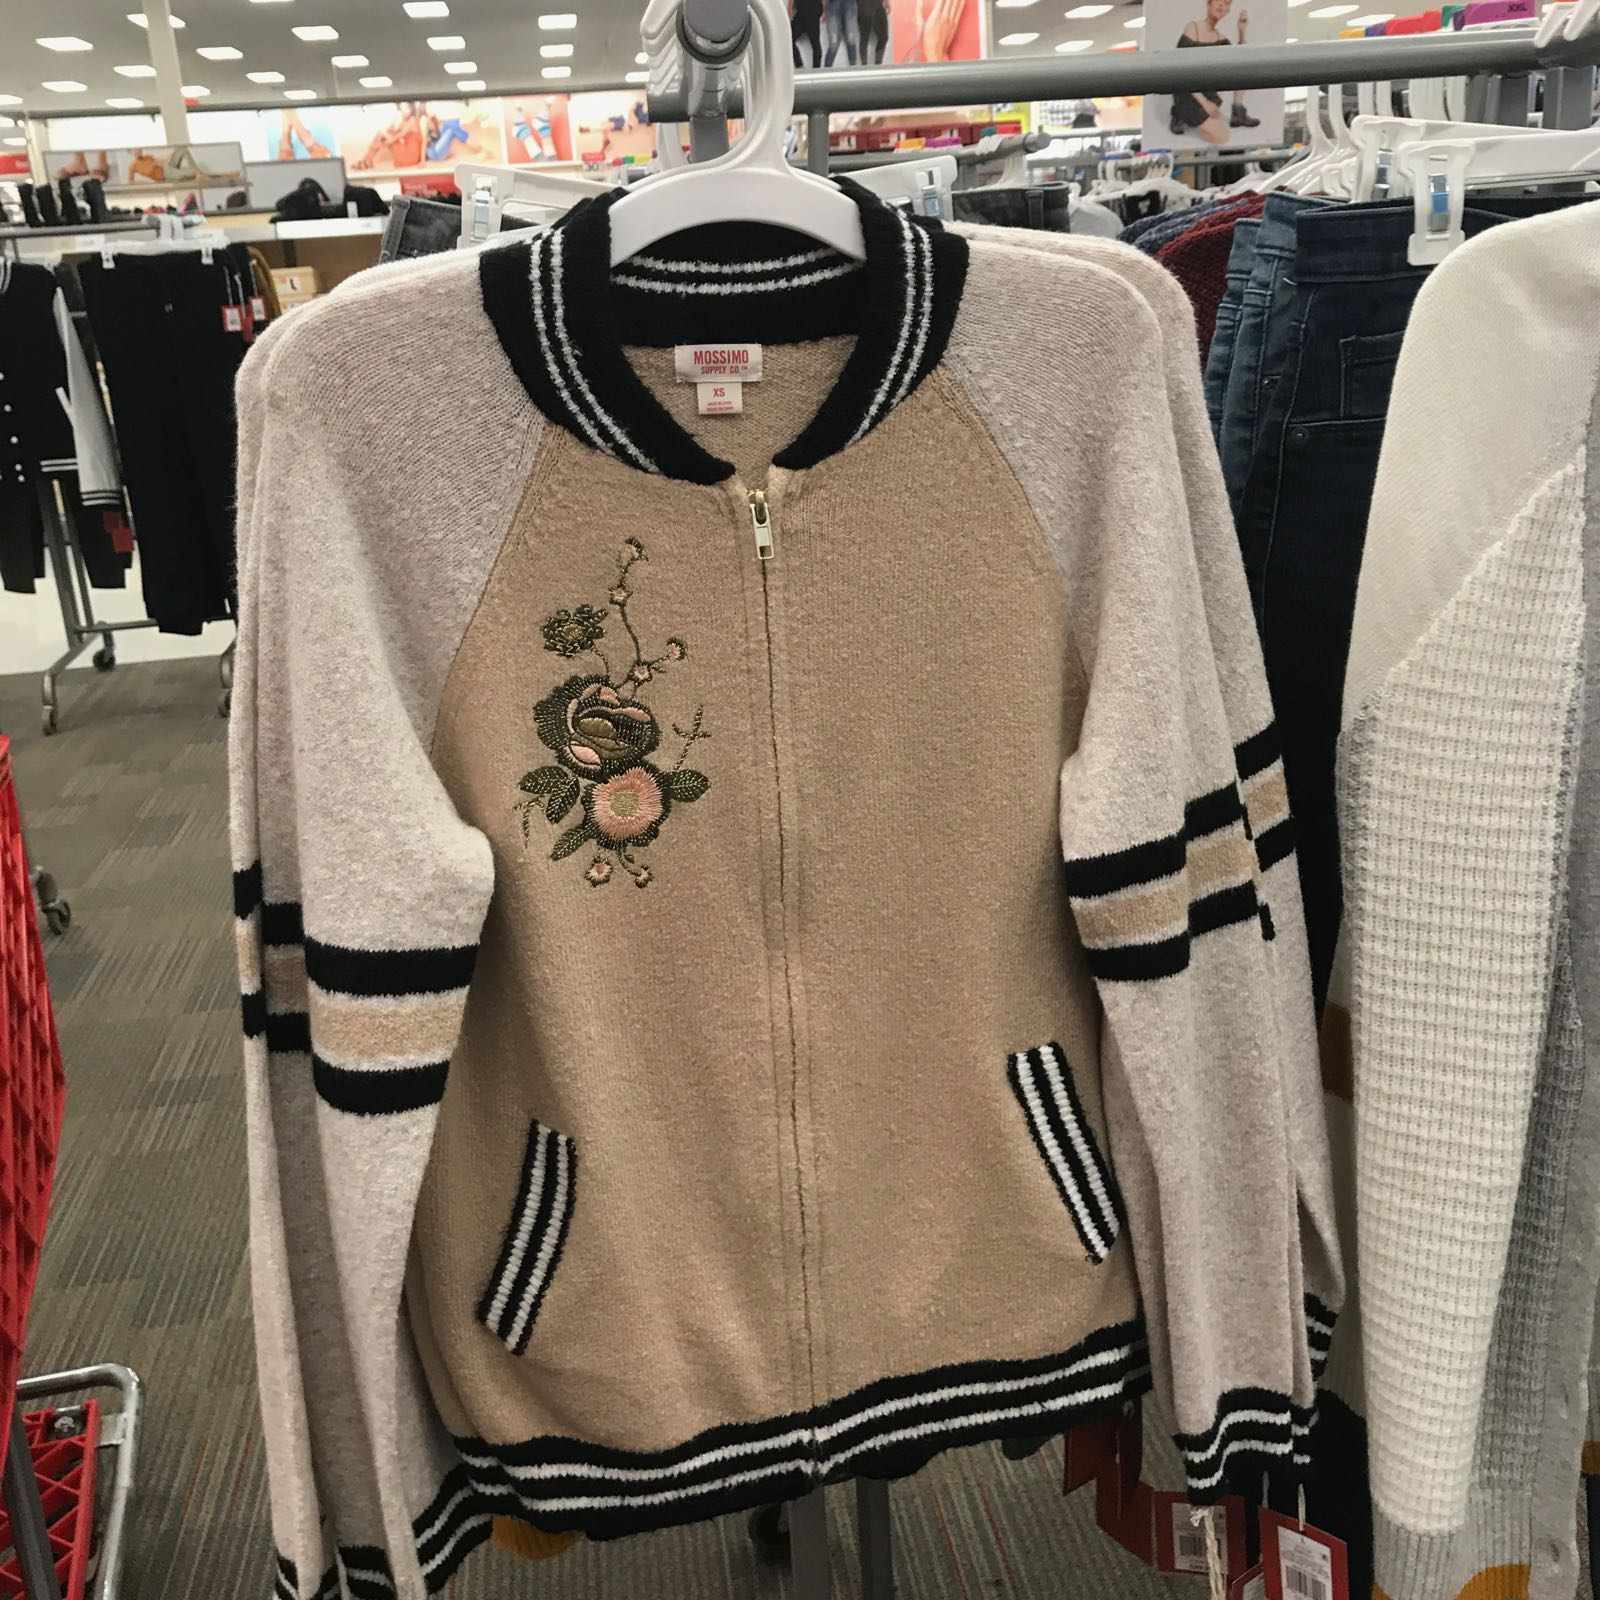 Fall trendspotting at Target reveals the bomber jacket trend.